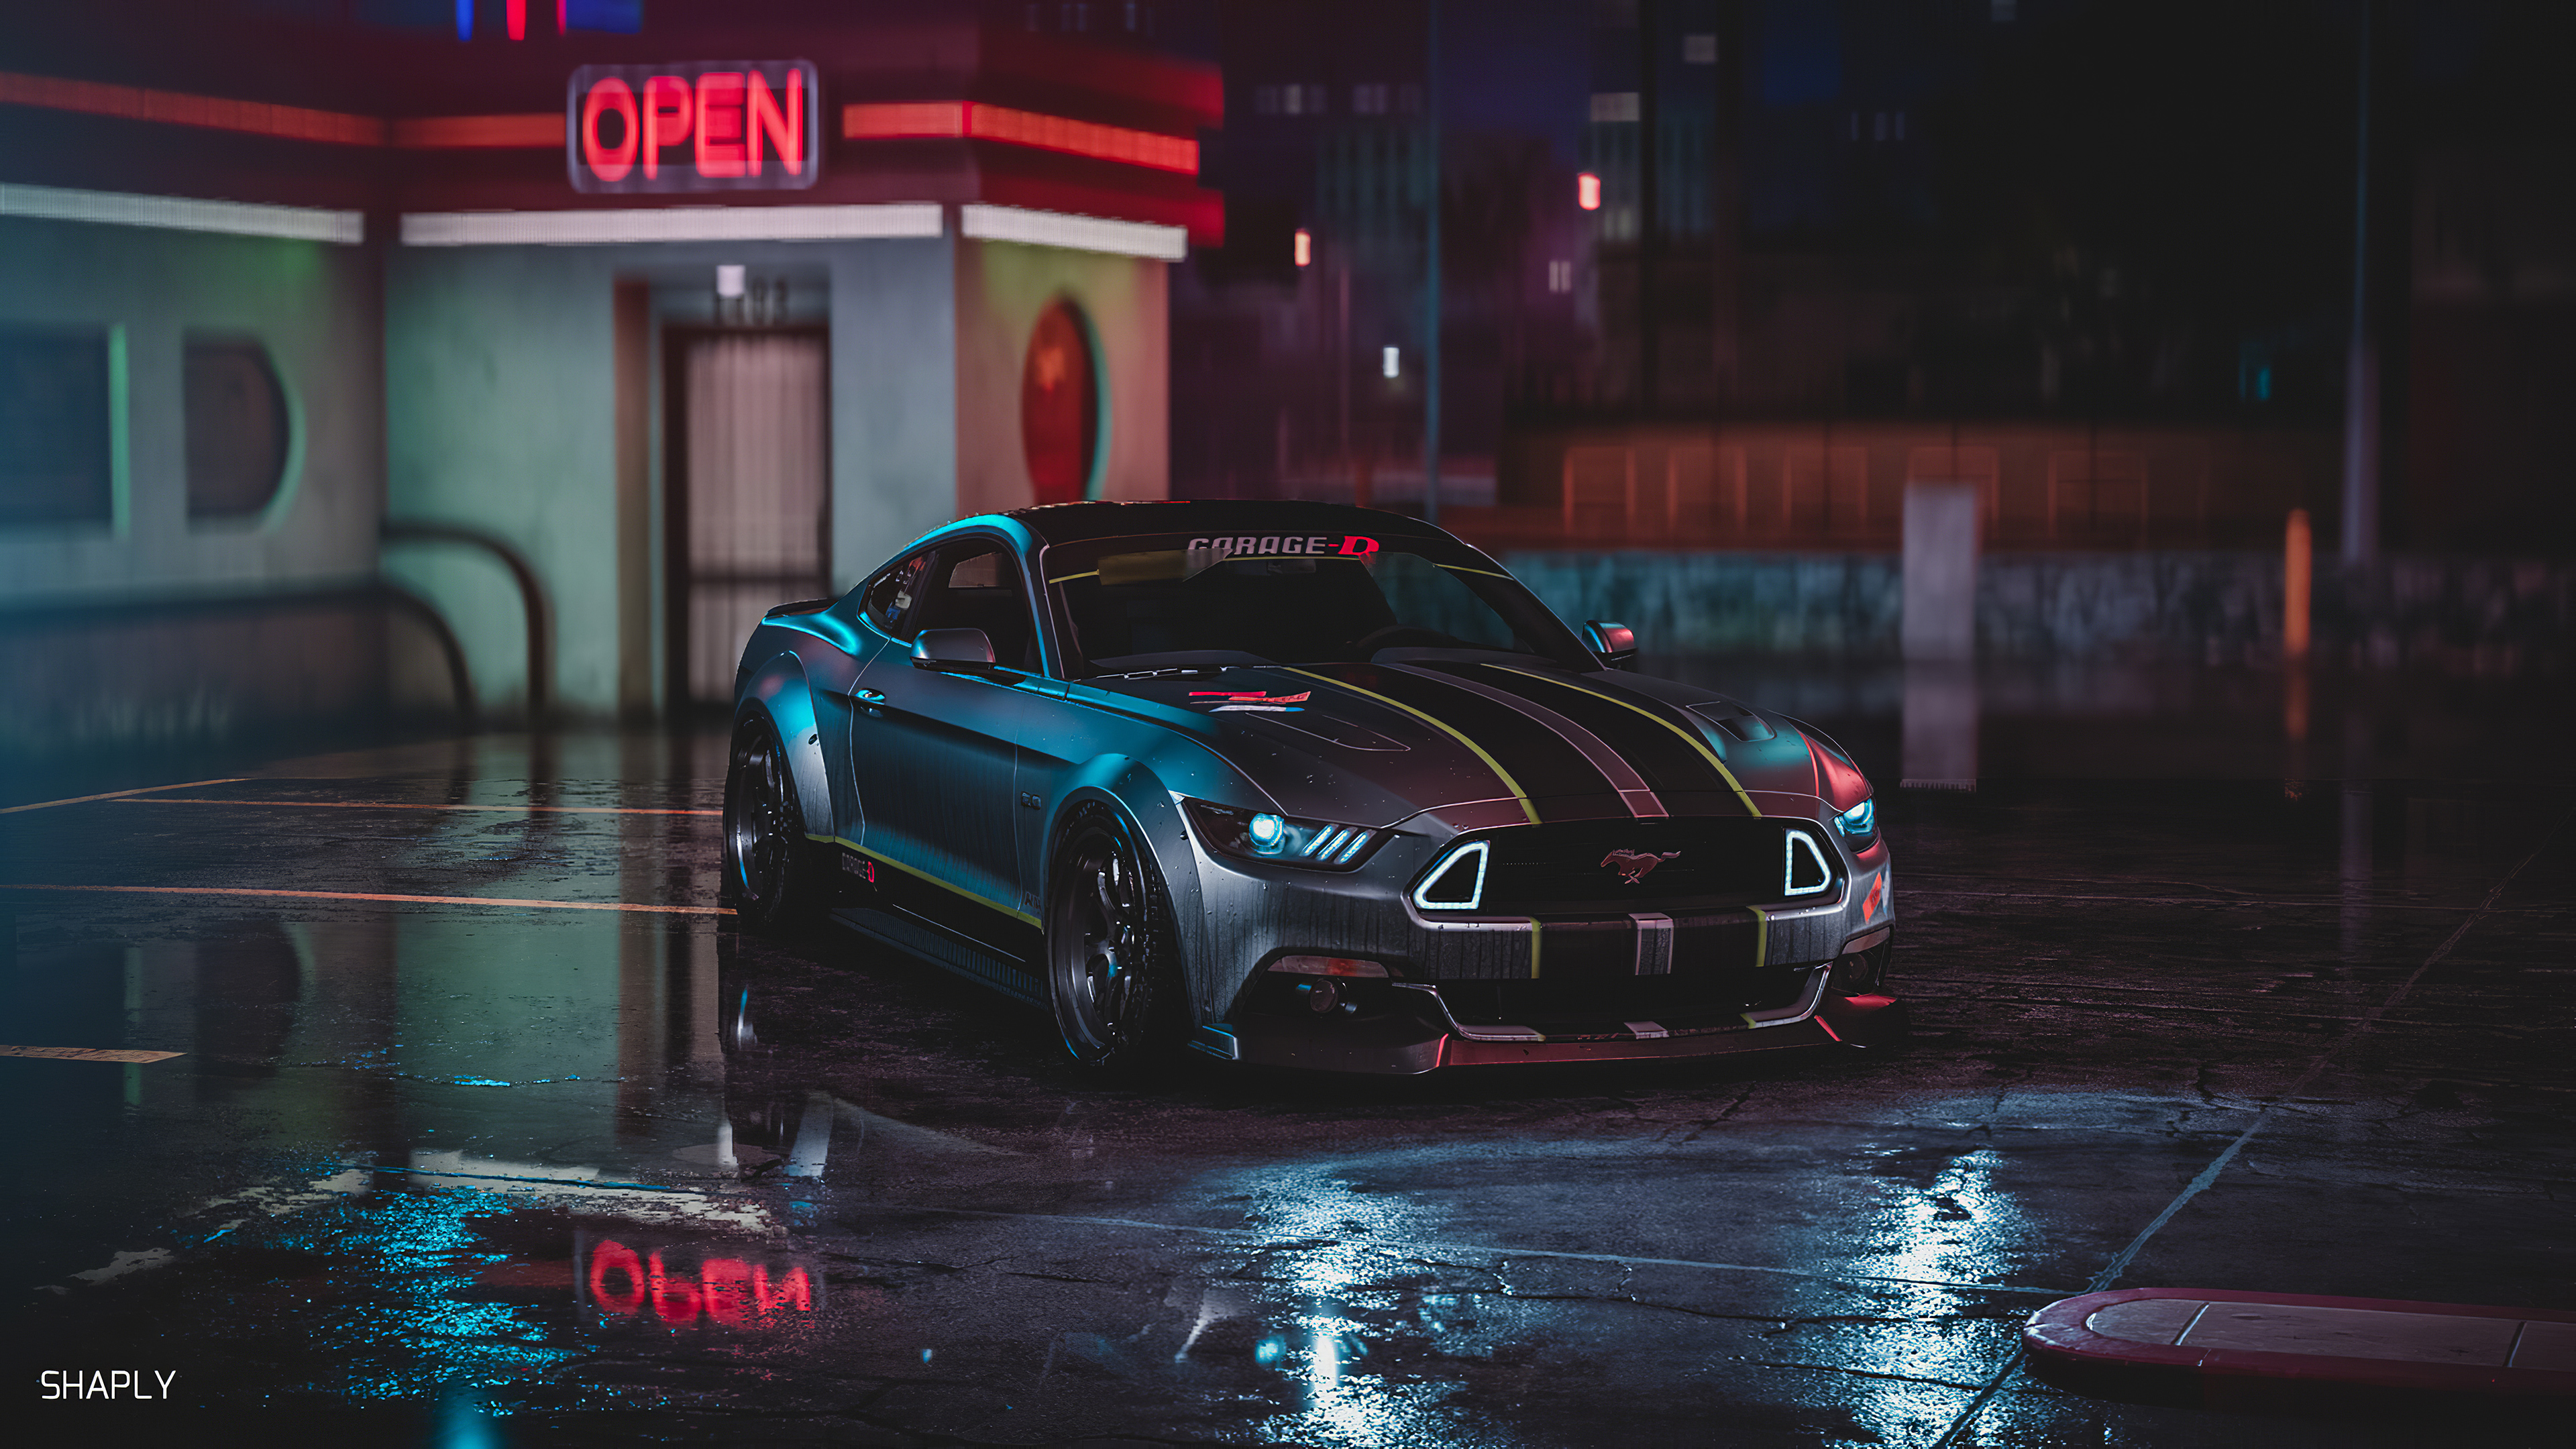 ford mustang gt neon harmony 1570919171 - Ford Mustang Gt Neon Harmony - hd-wallpapers, ford wallpapers, ford mustang wallpapers, cars wallpapers, artstation wallpapers, 4k-wallpapers